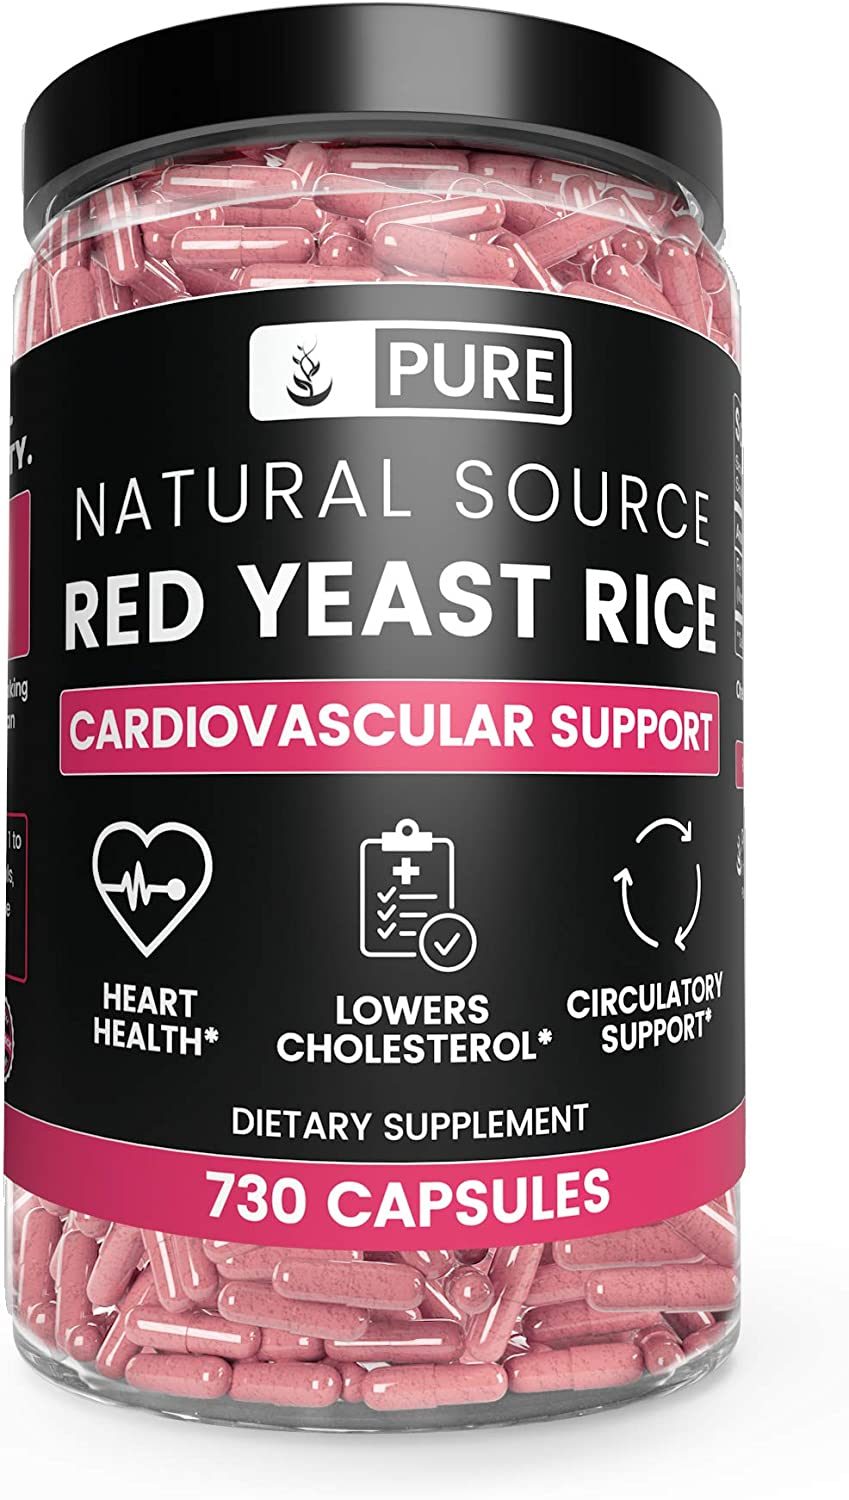 Pure Red Yeast Rice 730 Natural Glute Lowest price challenge Non-GMO 100% Omaha Mall Capsules